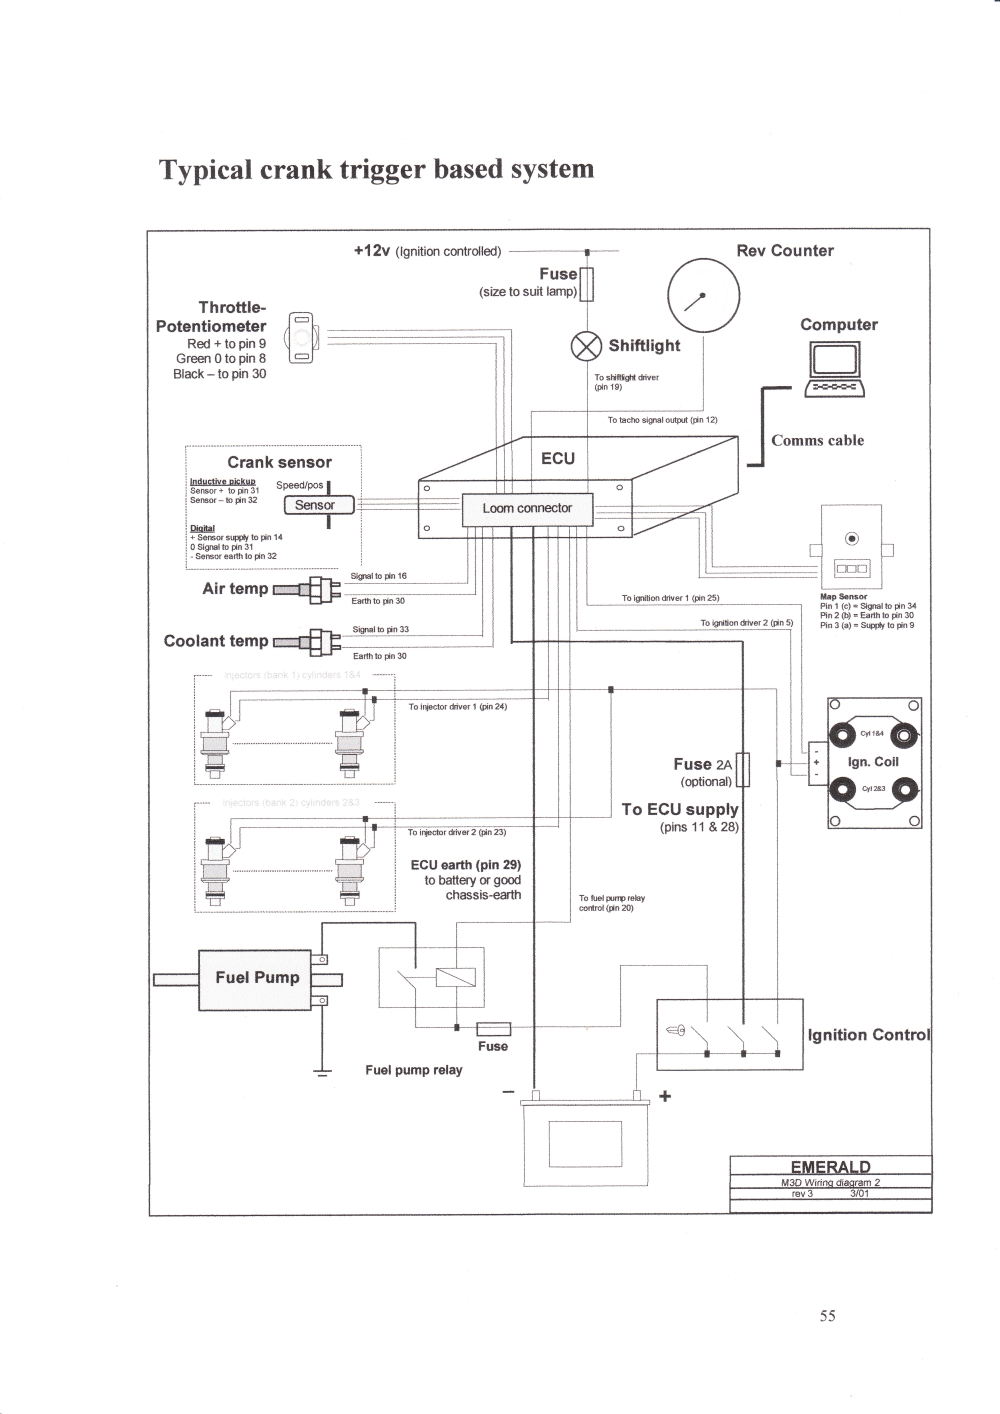 201203022025639669ECU wiring emerald k6 wiring diagram electrical wiring diagrams \u2022 wiring Residential Electrical Wiring Diagrams at crackthecode.co